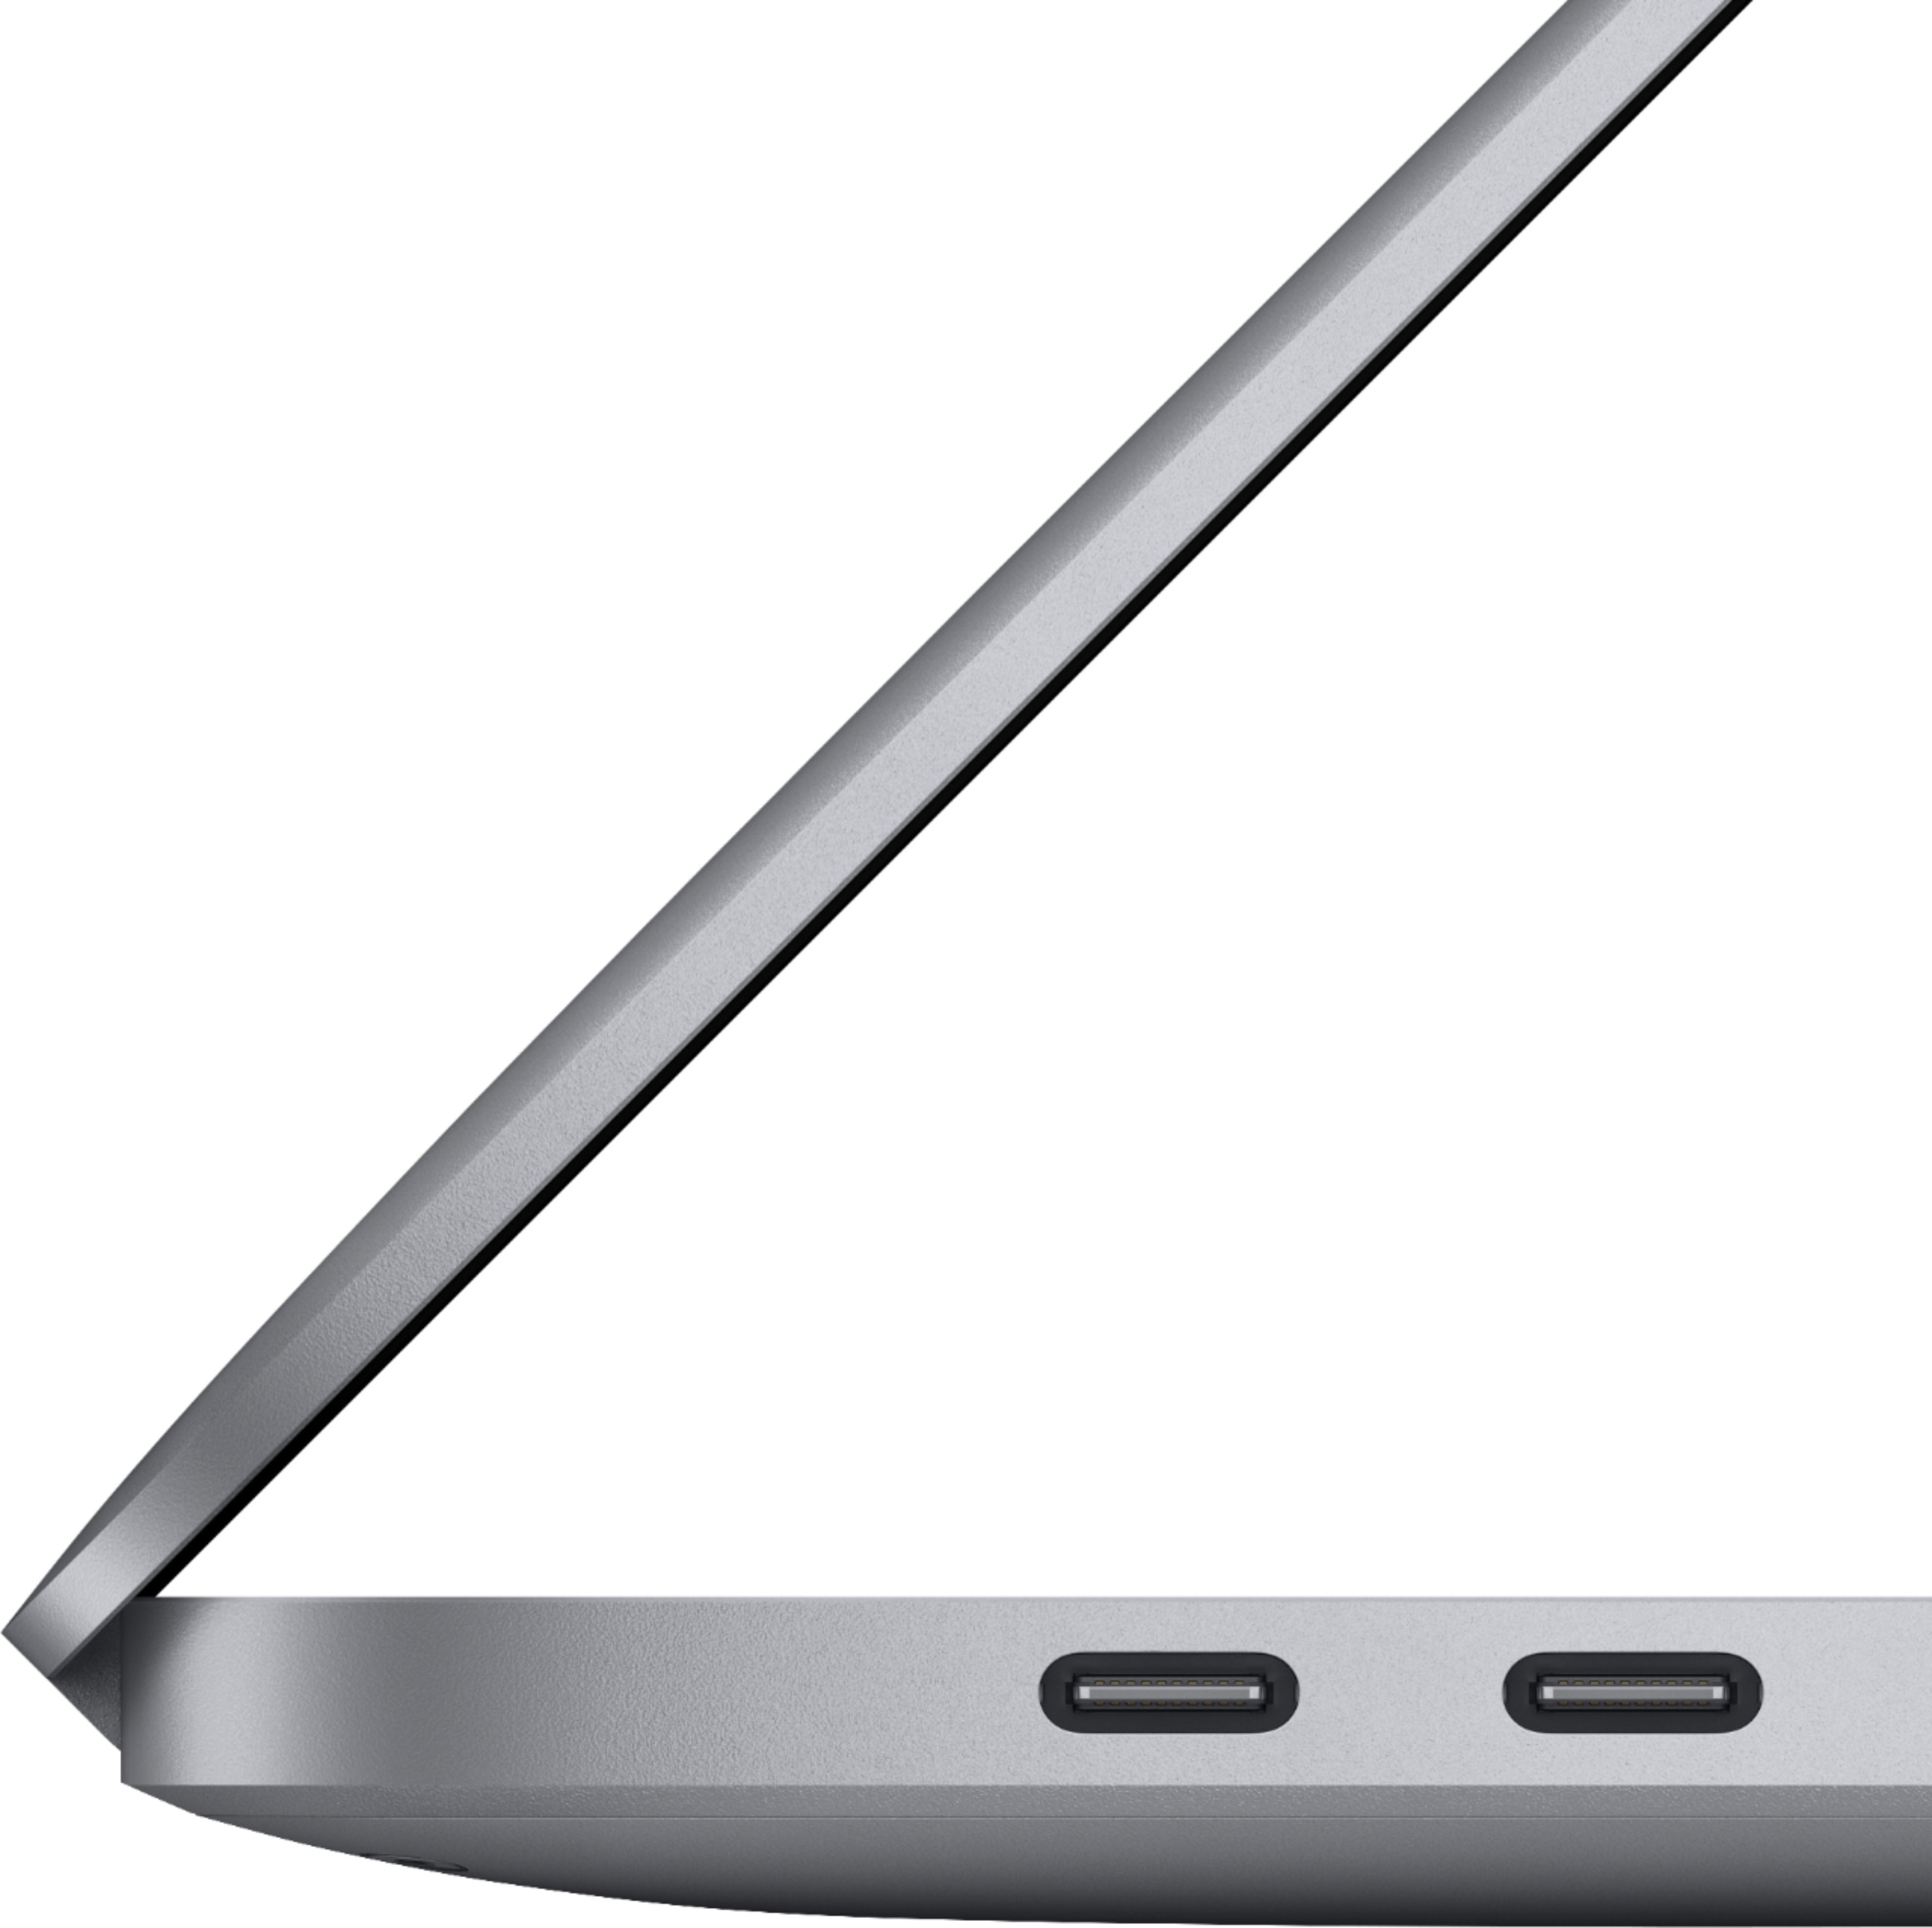 "Alt View Zoom 14. Apple - Geek Squad Certified Refurbished MacBook Pro 16"" - Intel Core i7 - 16GB Memory - AMD Radeon Pro 5300M - 512GB SSD - Space Gray."